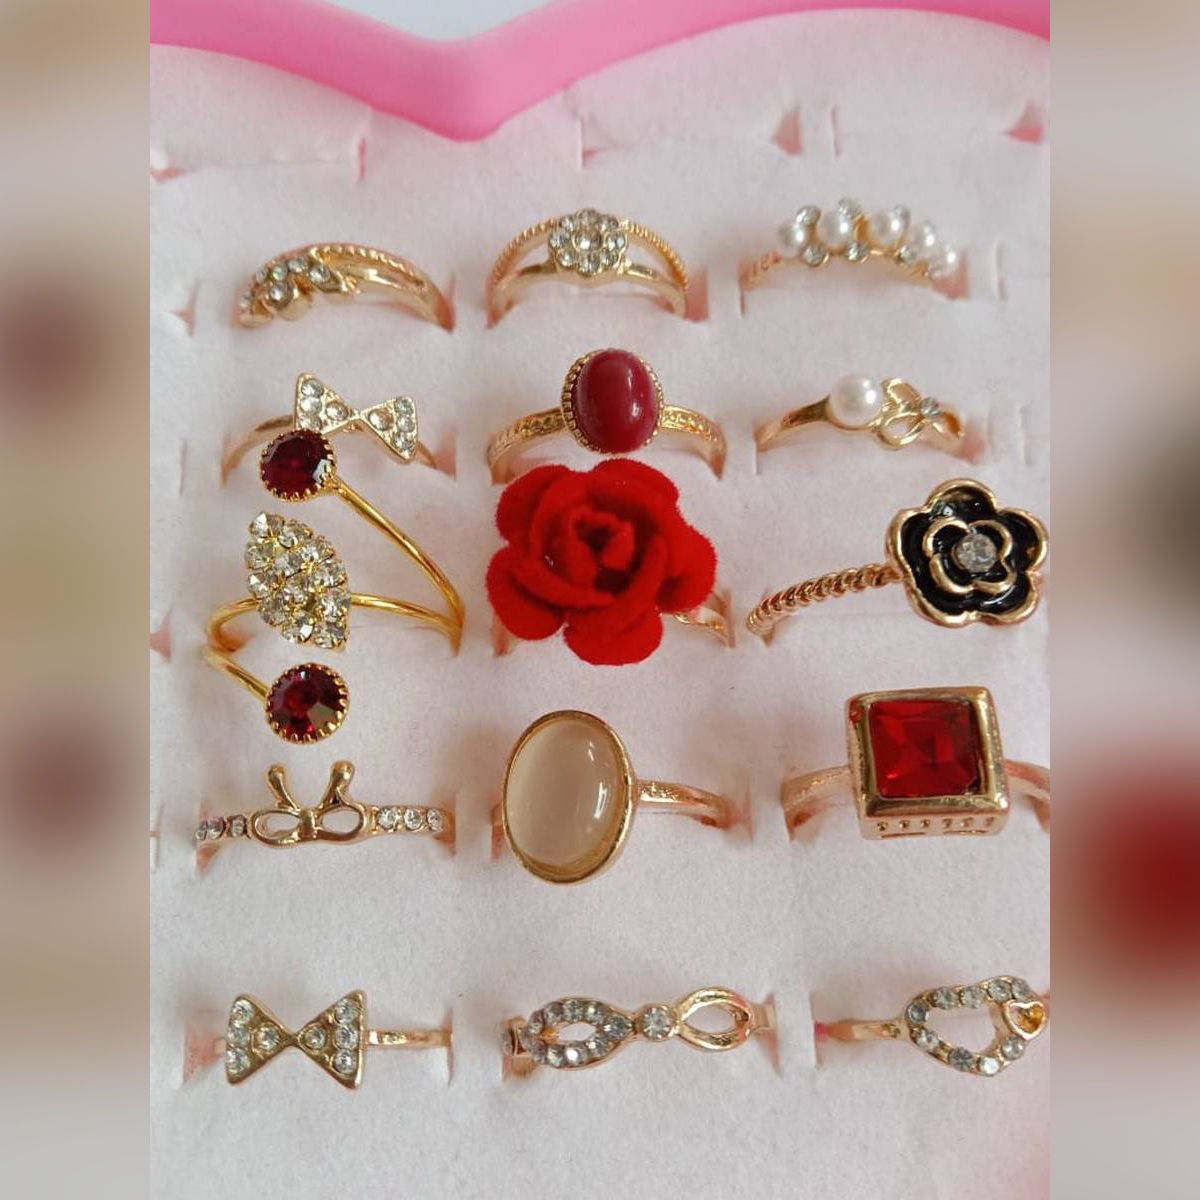 13 Pieces ring/Set Palm Carved High Class Combination Rings For Girl & Woman - Golden, Latest Design suitable as an Eid Gift, Anniversary or Valentine Gift